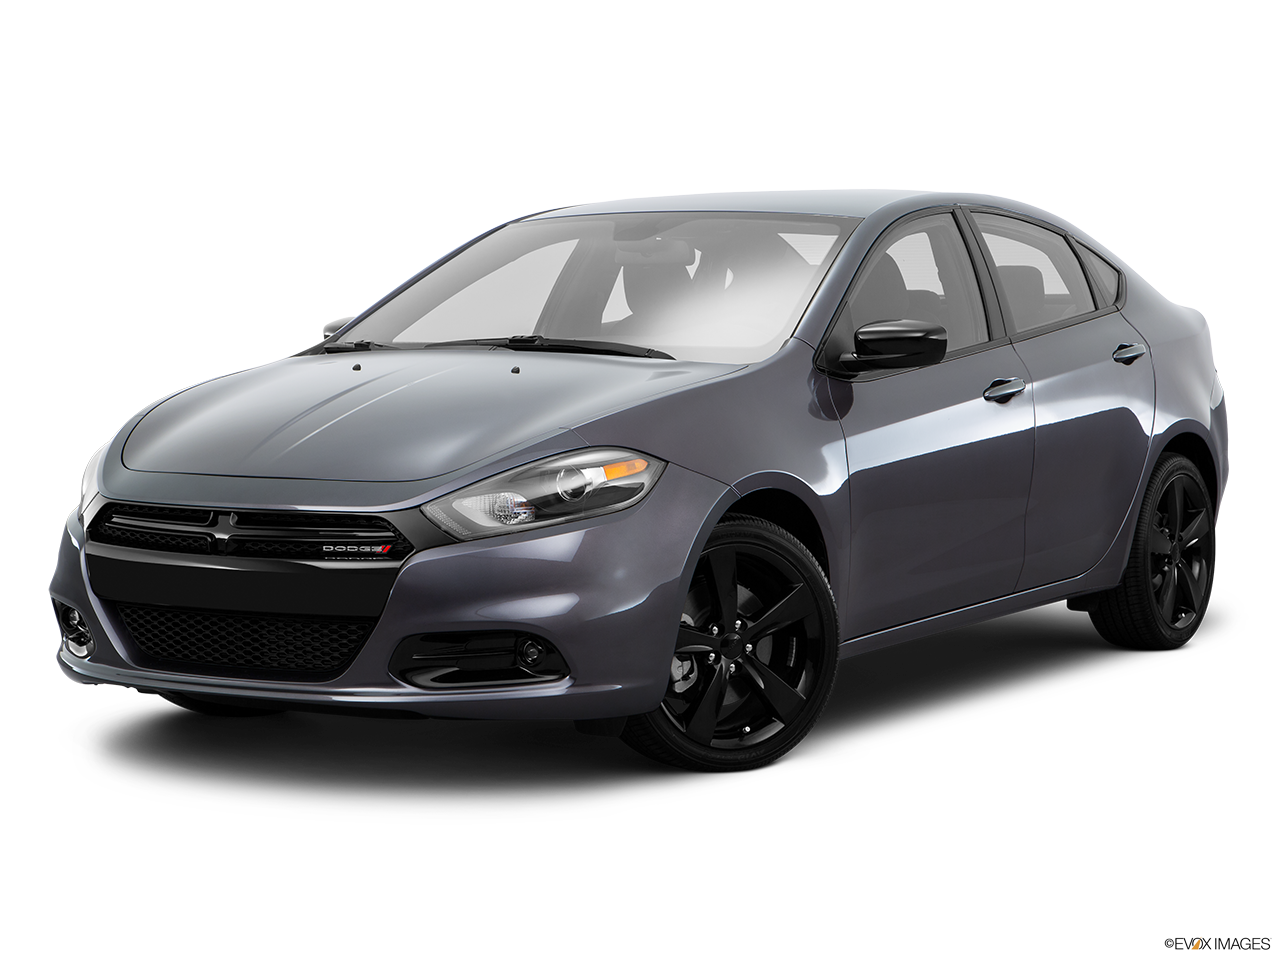 Test Drive A 2016 Dodge Dart  at Arrigo CDJR West Palm Beach in West Palm Beach